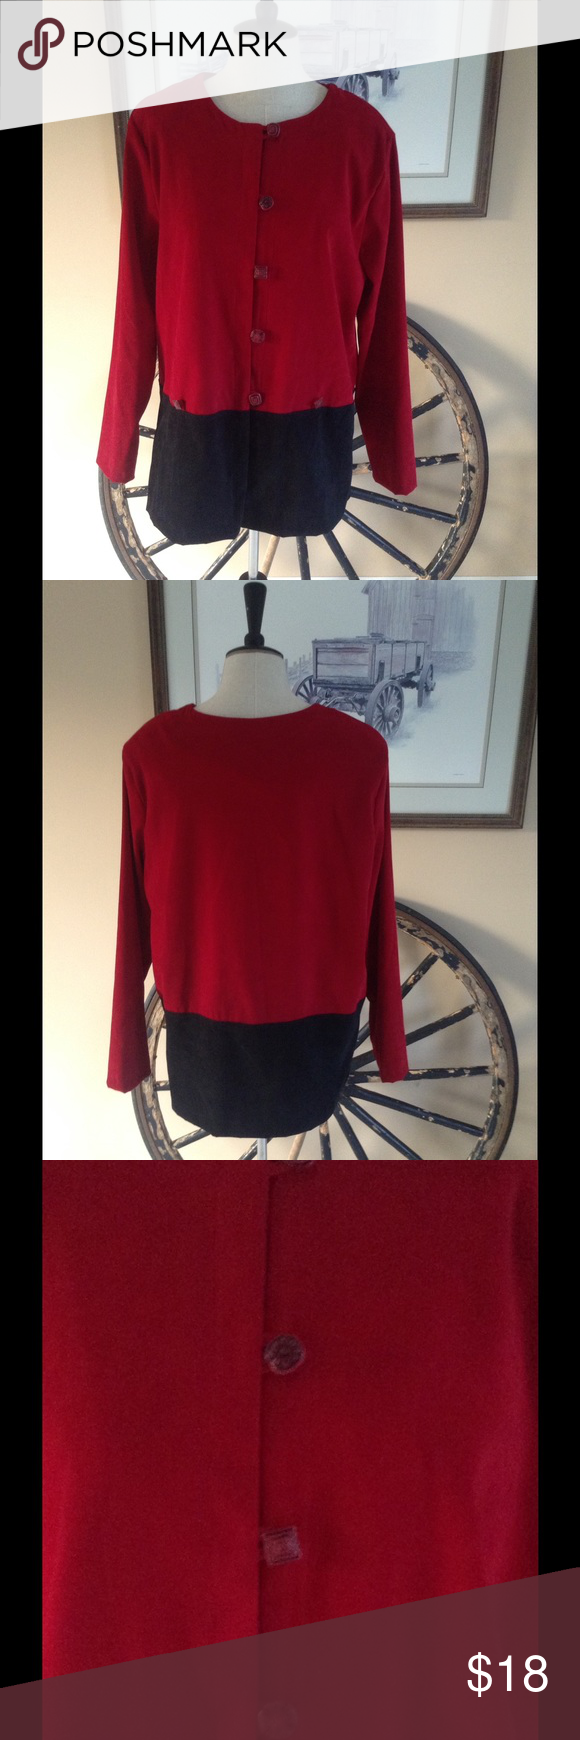 """R&K Originals jacket Deep red top and black bottom to compliment it. The buttons on this jacket are beautifully created in all different shapes and patterns. Fabric feels like a soft velvet even though it is 97% polyester and 3% spandex. Bust is 40"""". Length is 28"""" Jackets & Coats"""